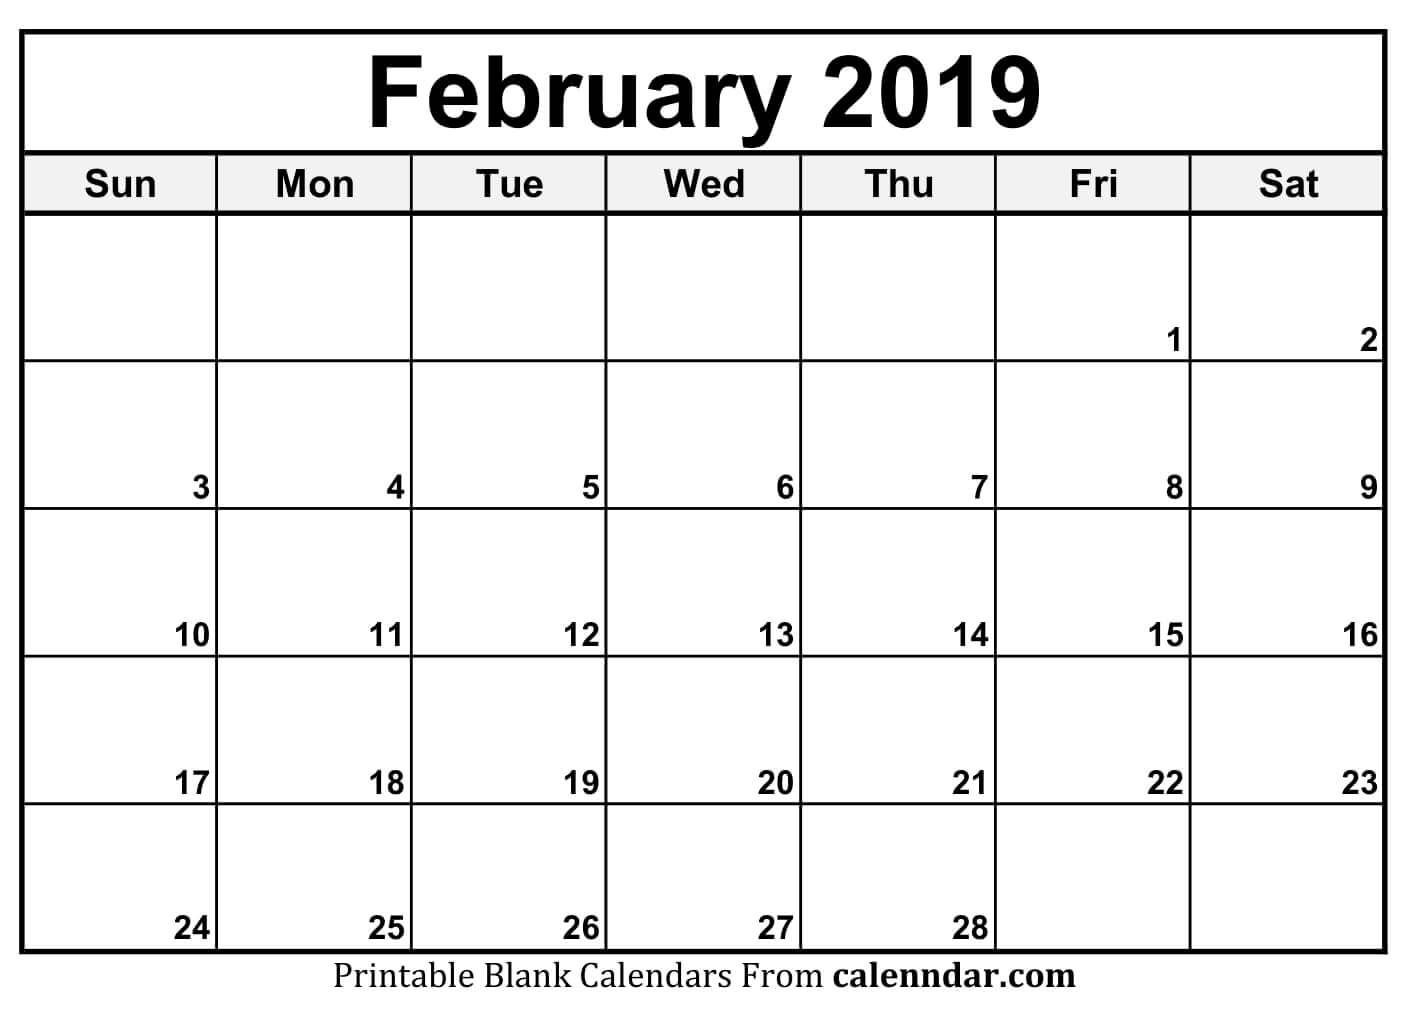 Blank Feb 2020 Calendar Printable Template With Holidays  February Blank Calendar Printable